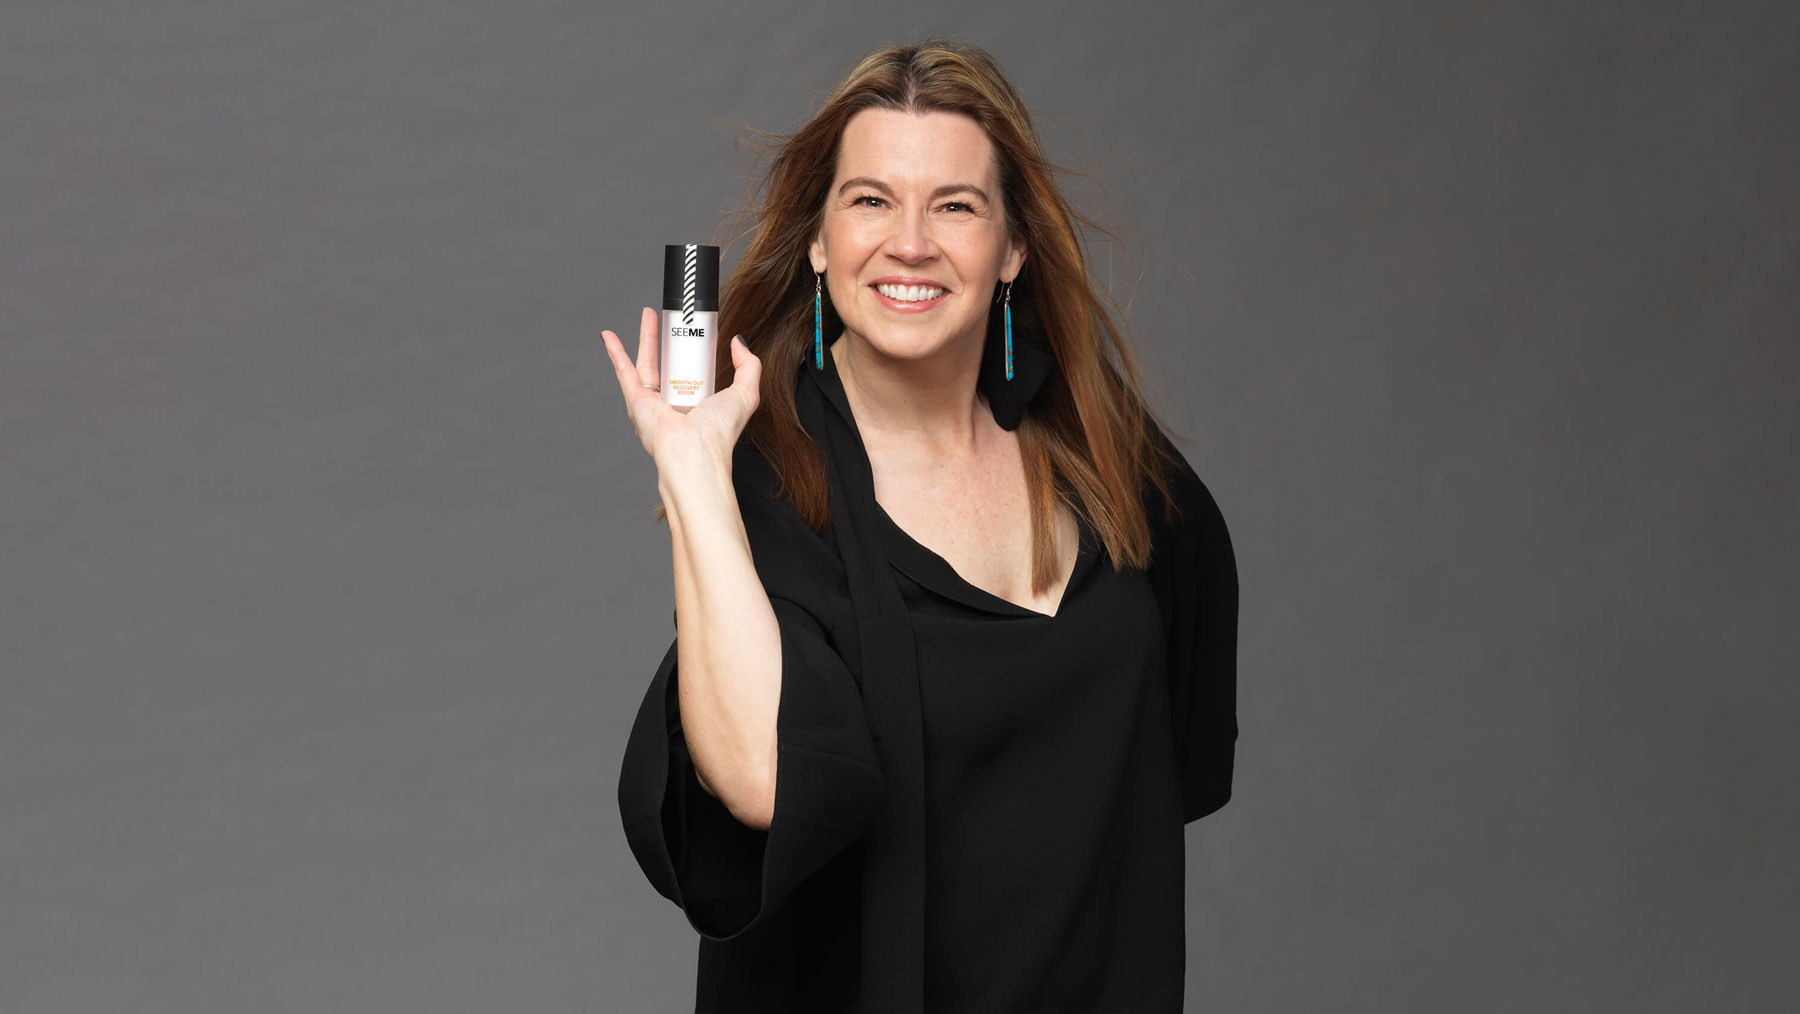 A menopausal aged woman holds a bottle of SeeMee Smooth Out Recovery Cream